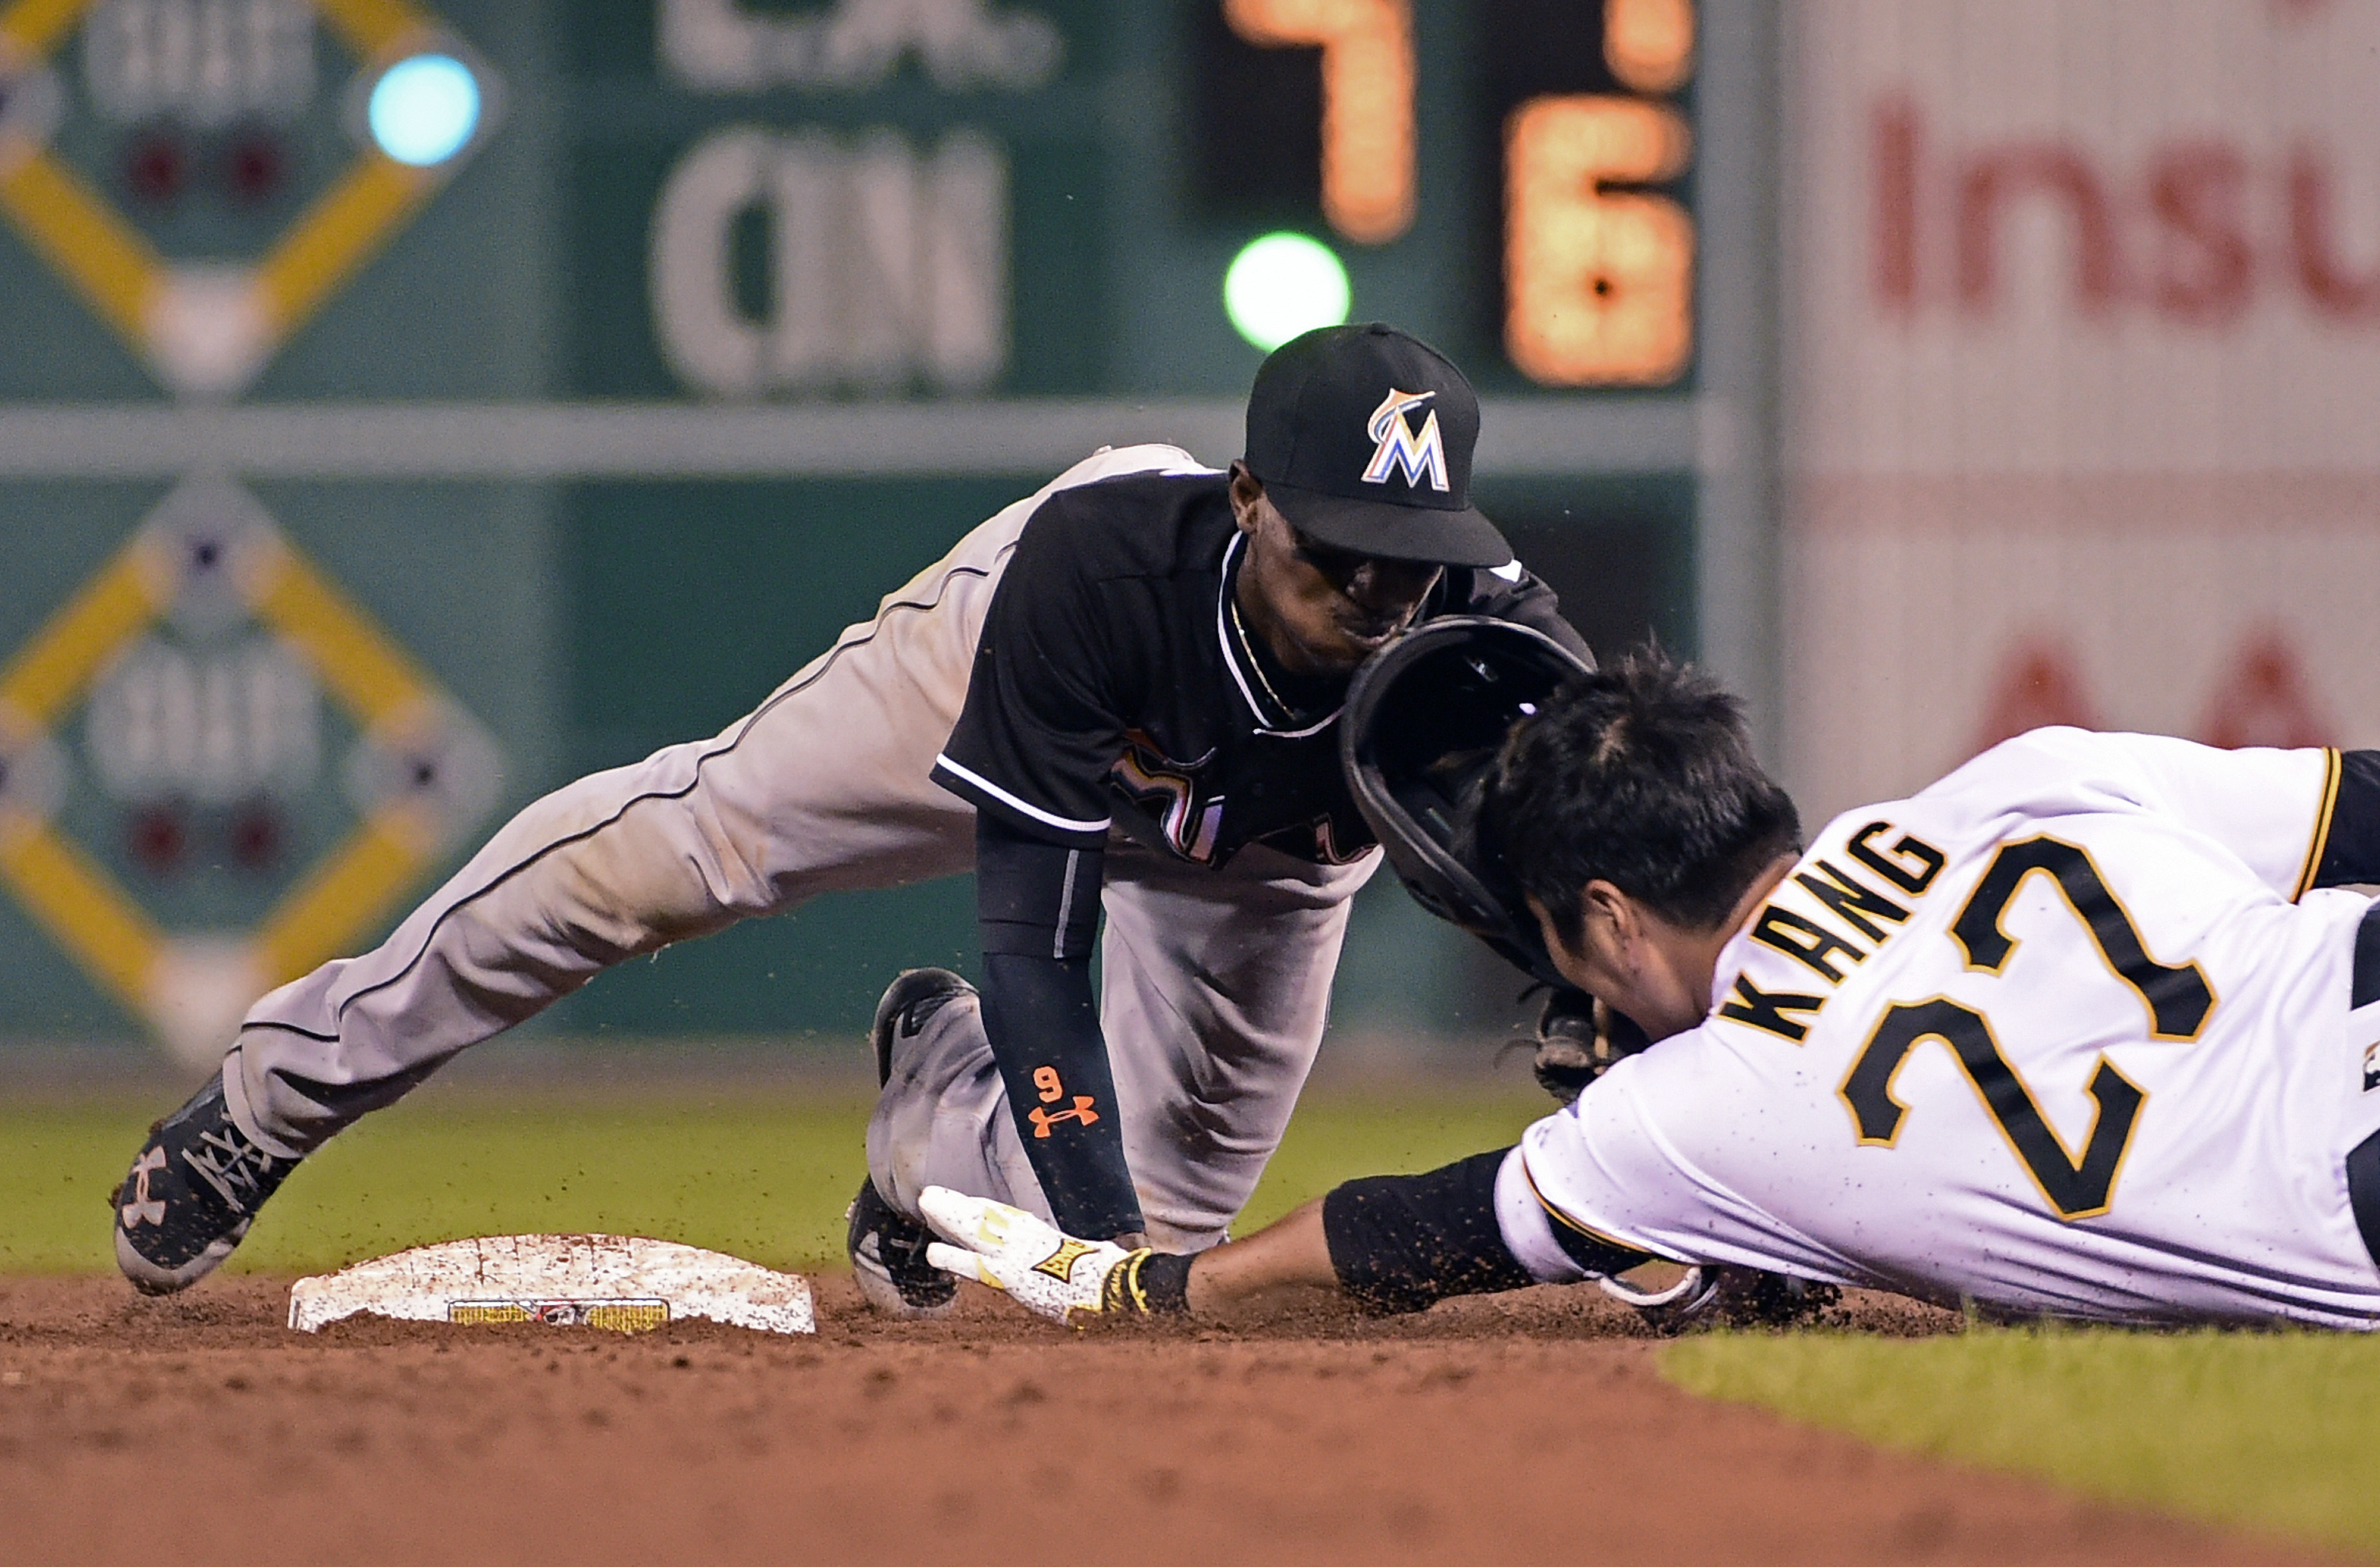 Miami Marlins' Dee Gordon tags out Pittsburgh Pirates' Jung Ho Kang in the eighth inning of a baseball game against in Pittsburgh, Friday, Aug. 19, 2016. (AP Photo/Fred Vuich)